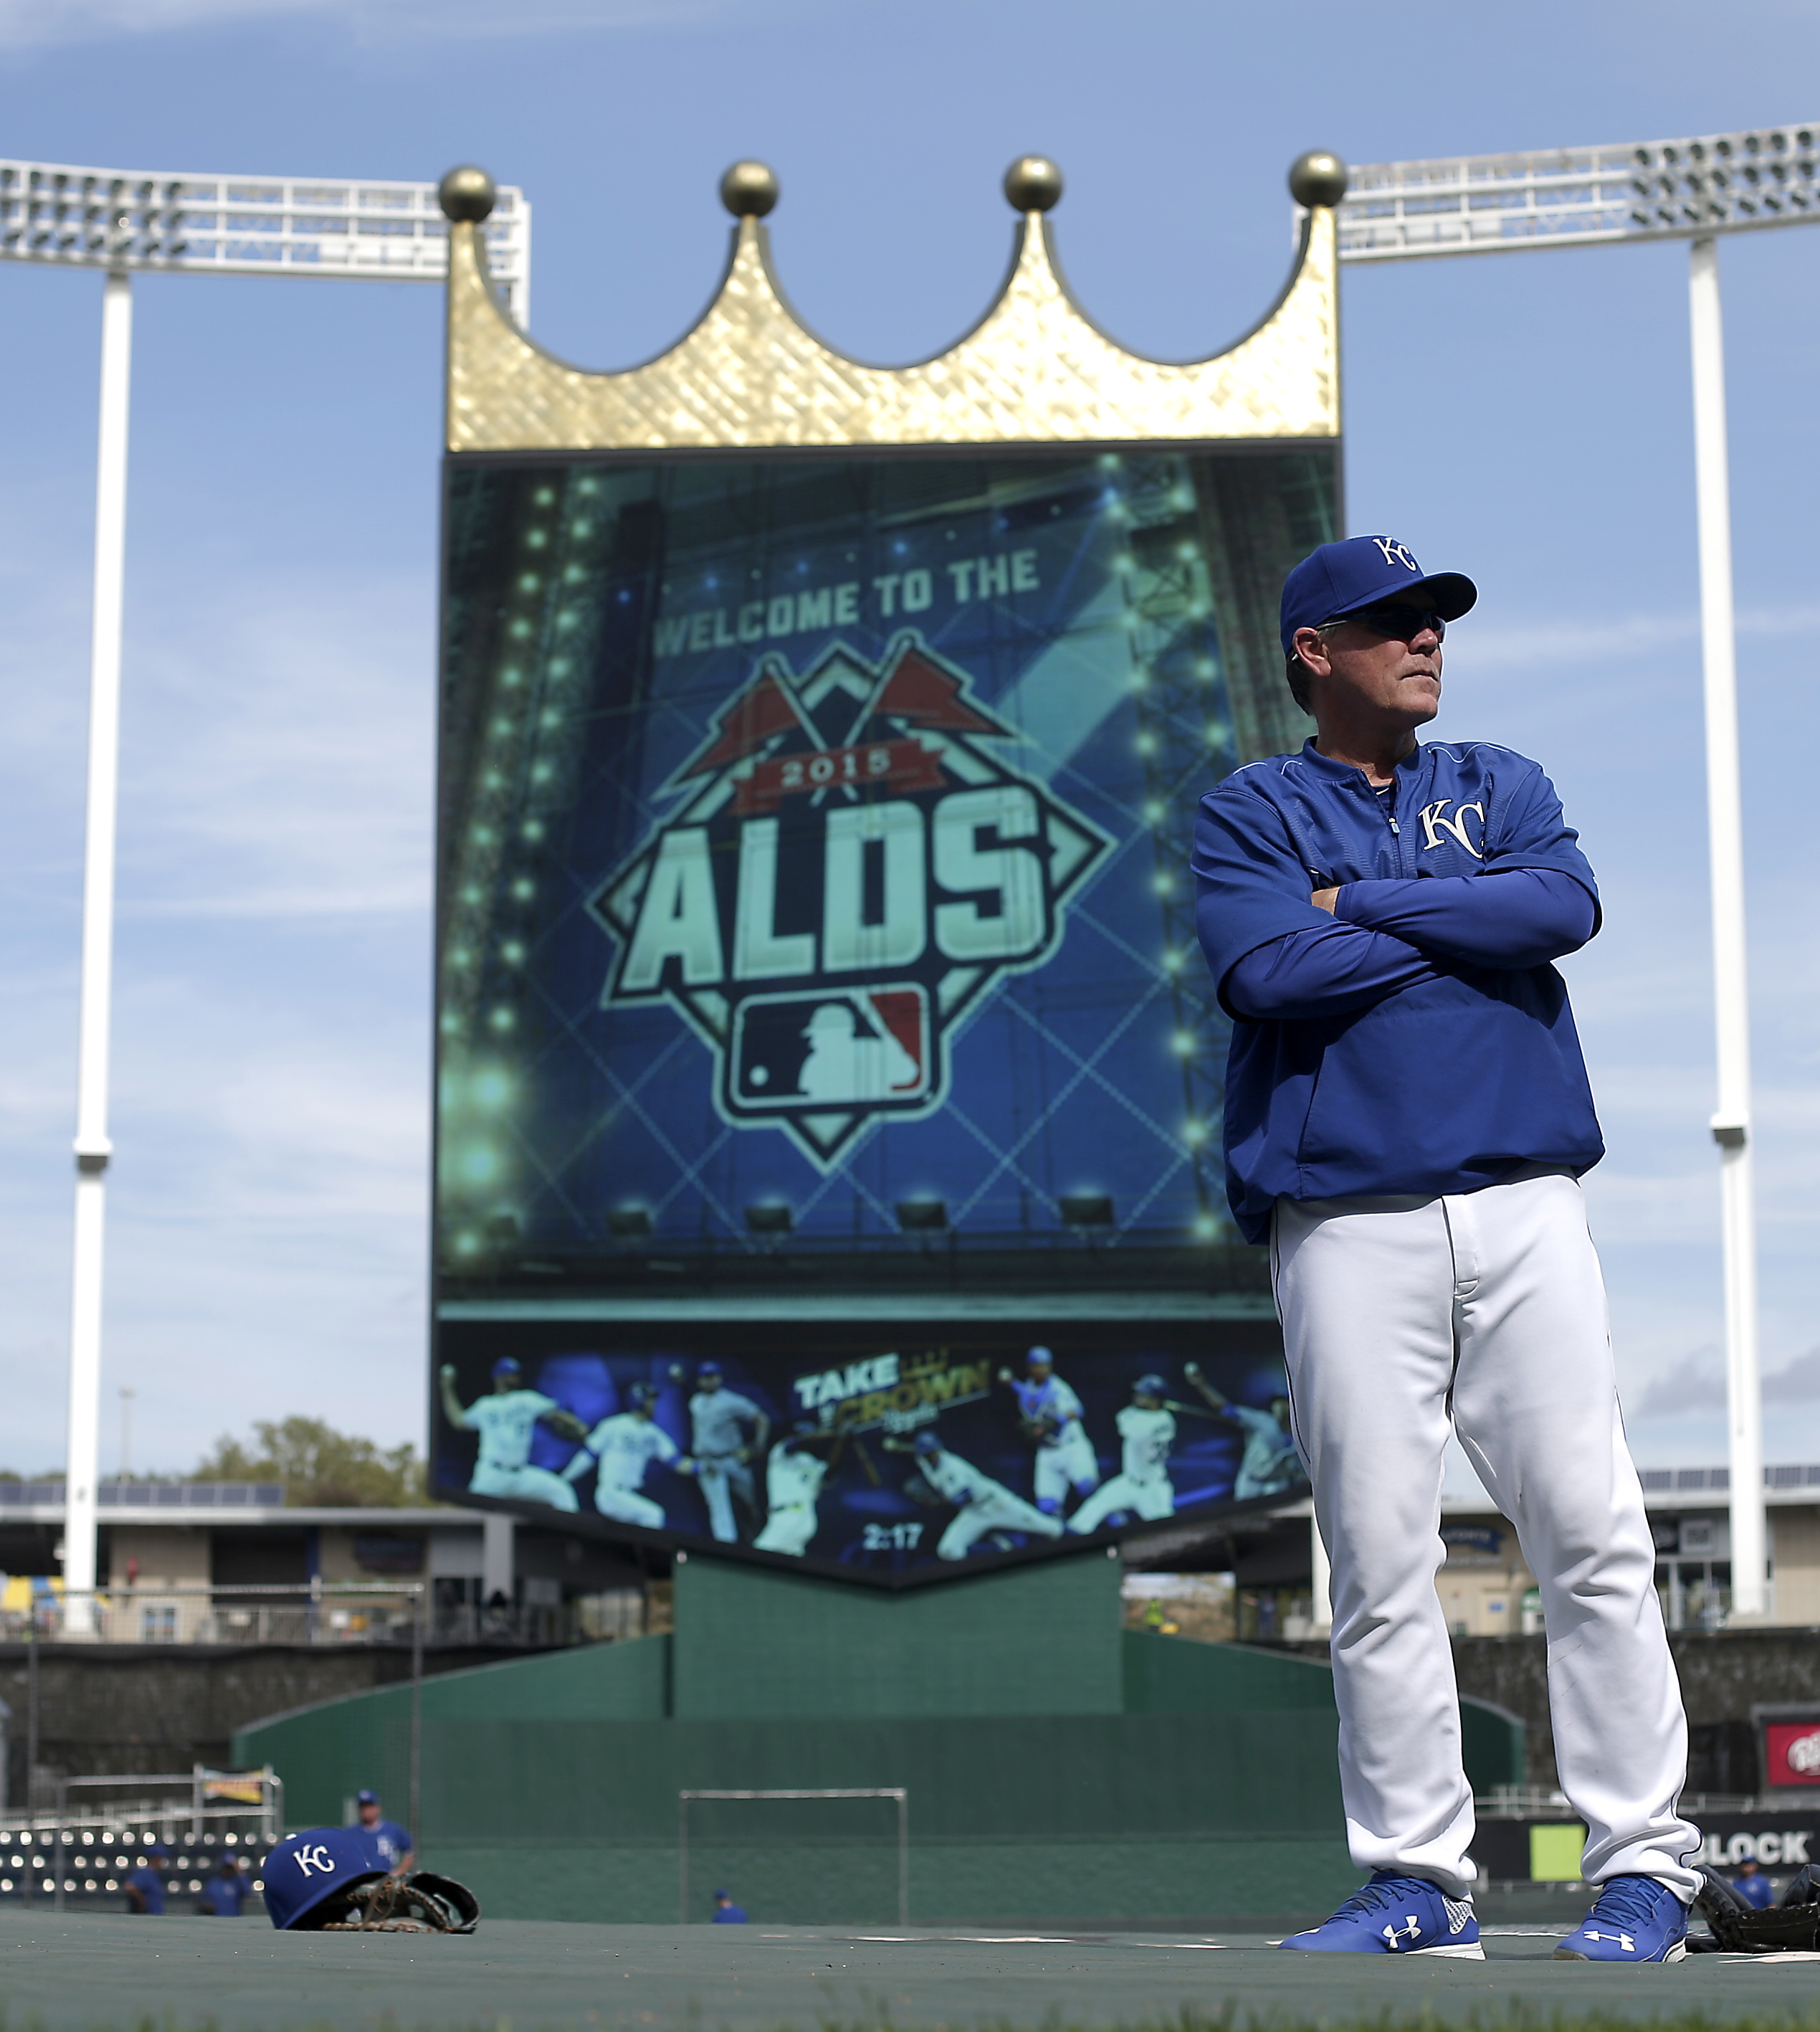 Kansas City Royals manager Ned Yost watches baseball batting practice Wednesday, Oct. 7, 2015, in Kansas City, Mo. The Royals face the Astros in Game 1 of the ALDS Thursday in Kansas City. (AP Photo/Charlie Riedel)